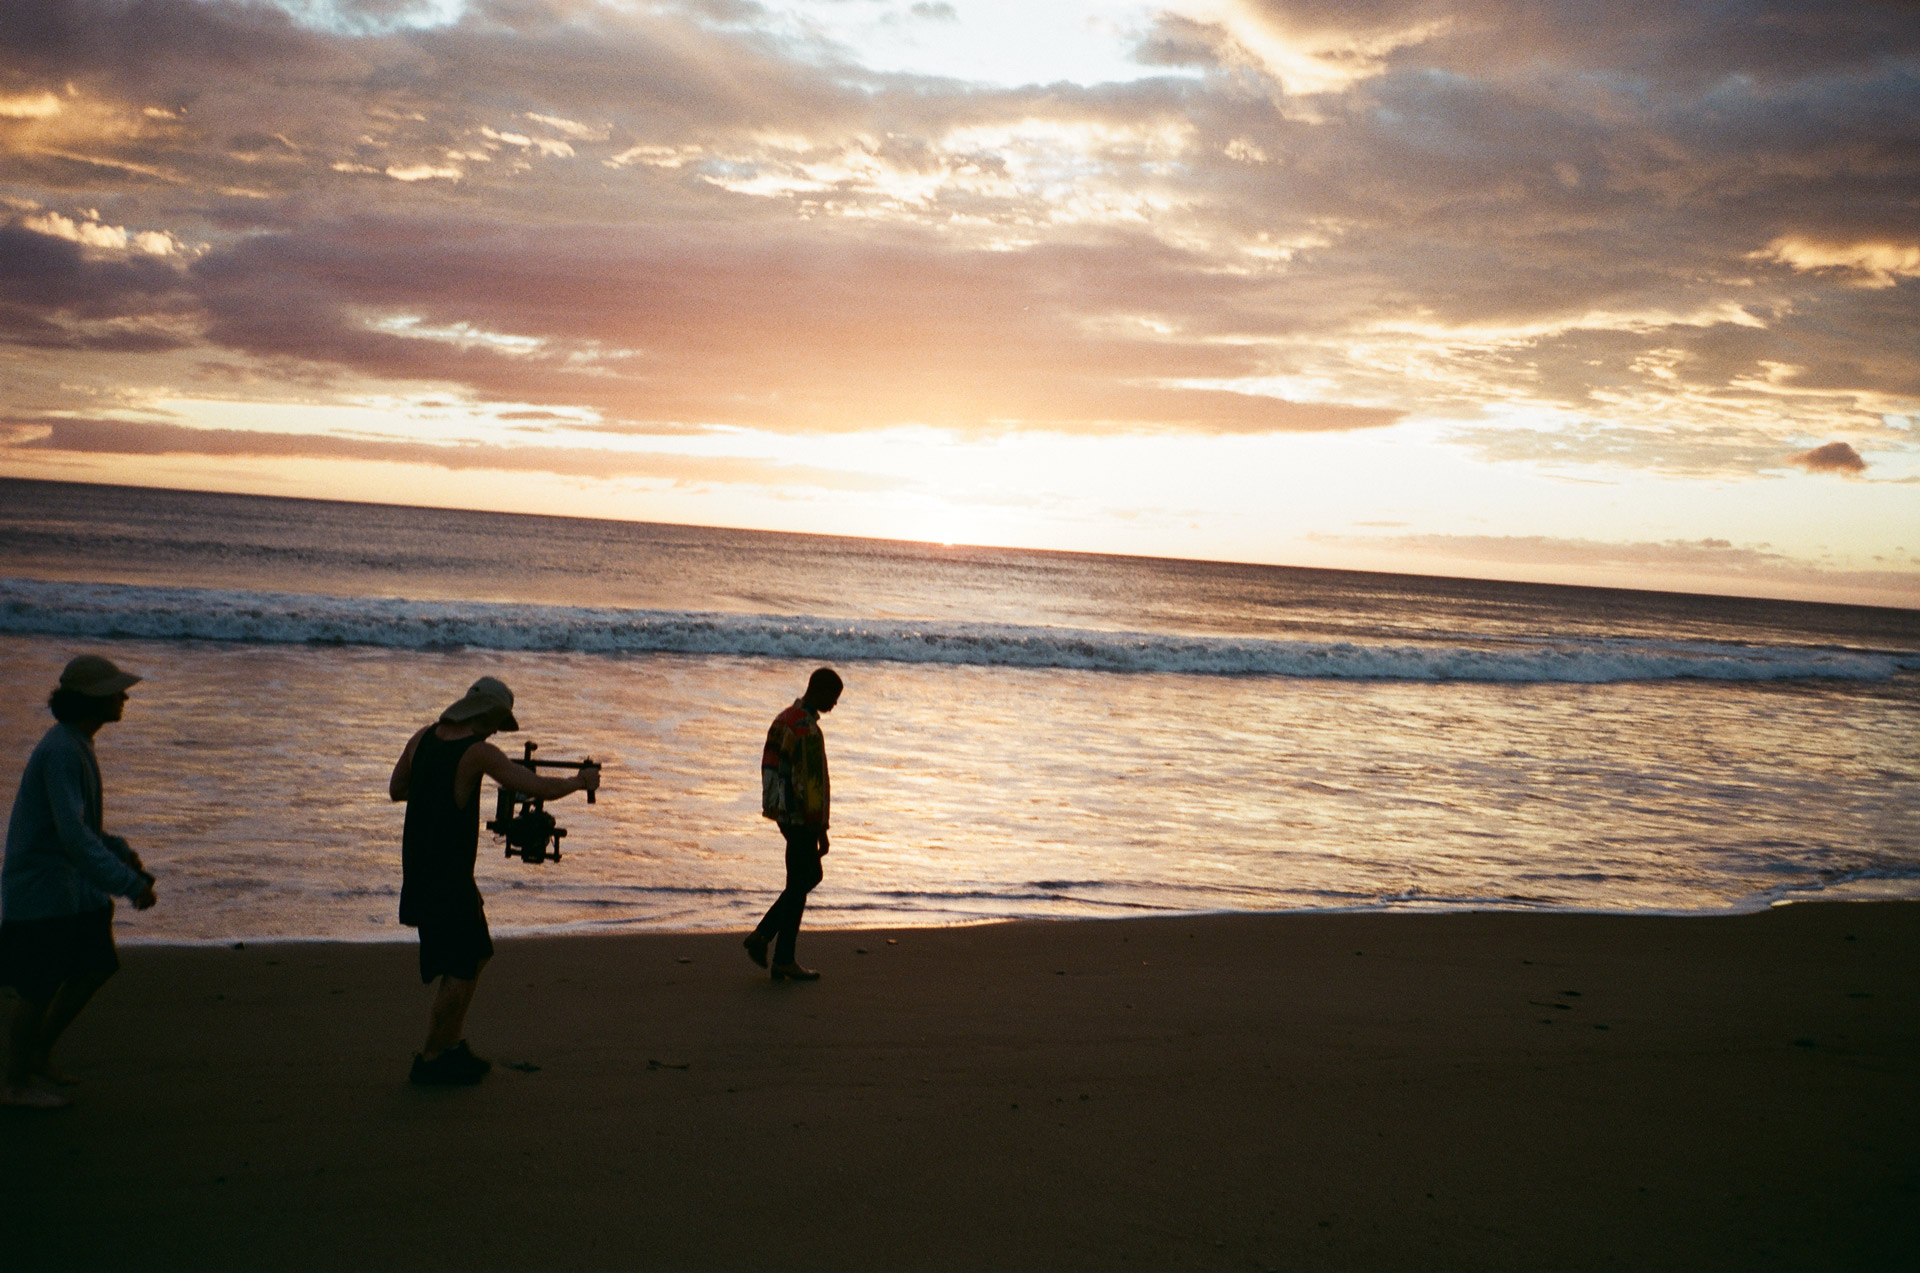 Vincent Ruel-Cote from Les Gamins filming singer Karim Ouellet walking on the beach at sunset for music video of La Mer A Boire